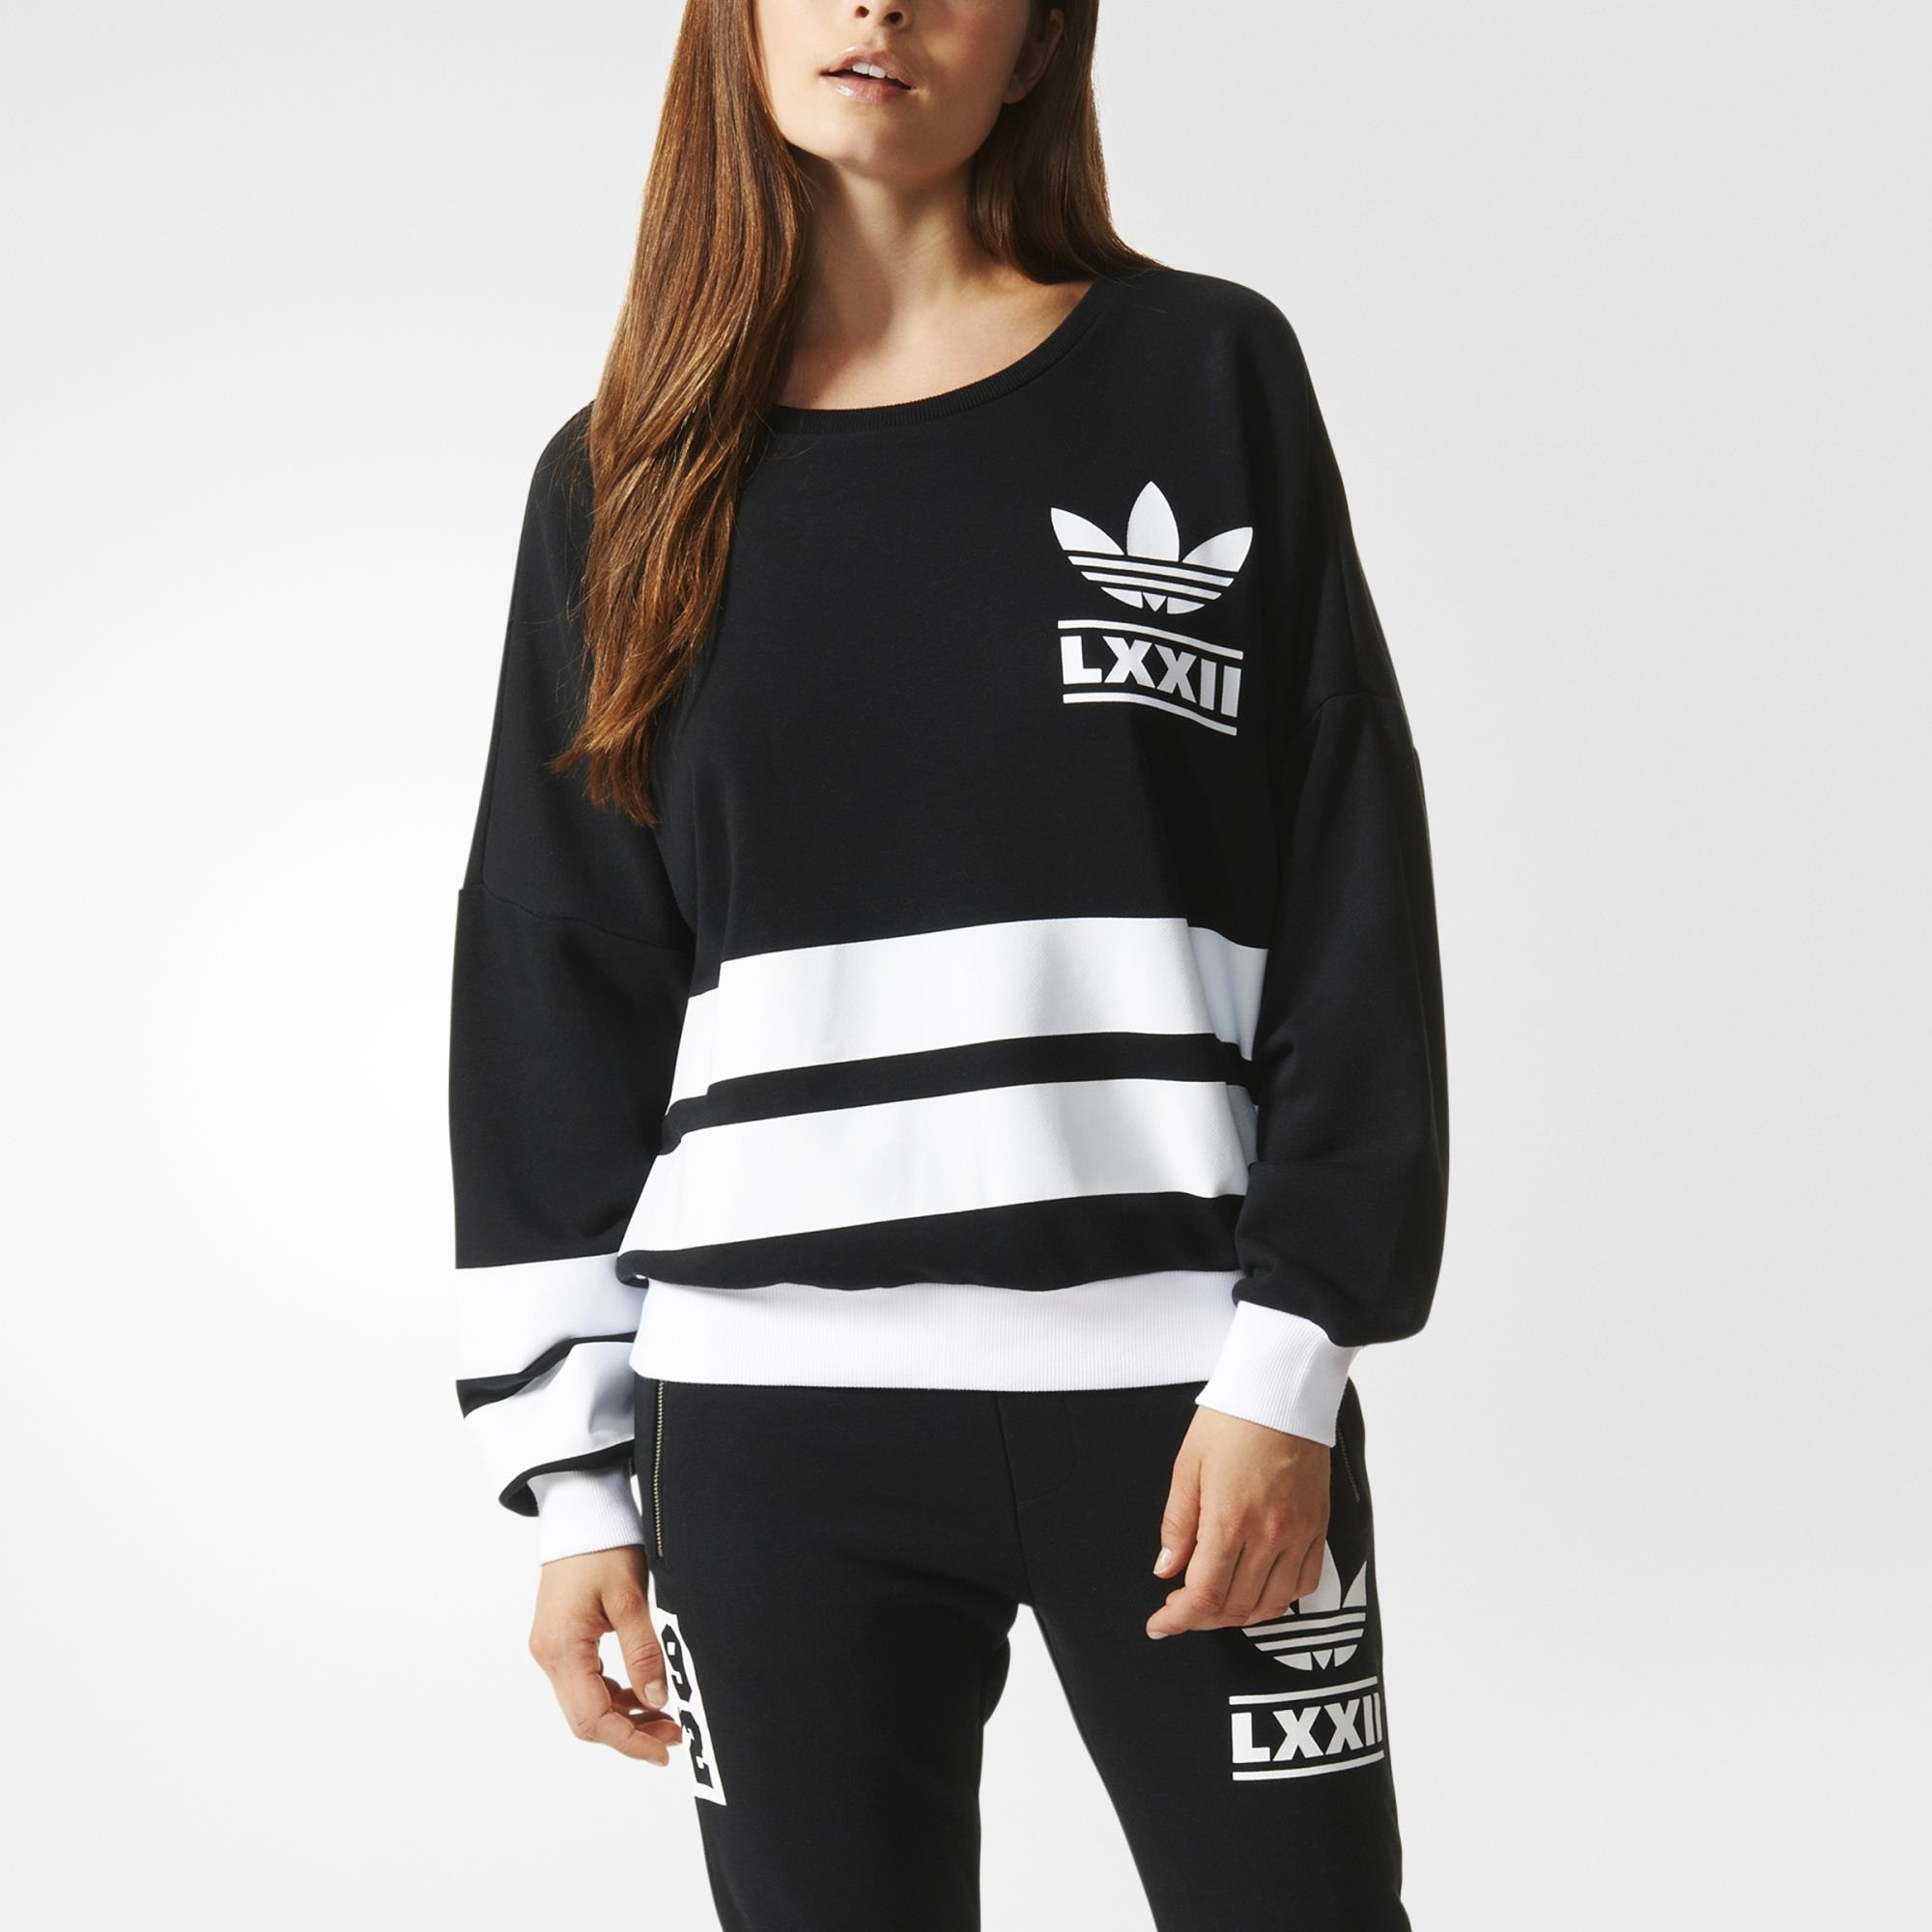 Buy Black adidas Originals 3 Stripes Velvet Overhead Hoodie